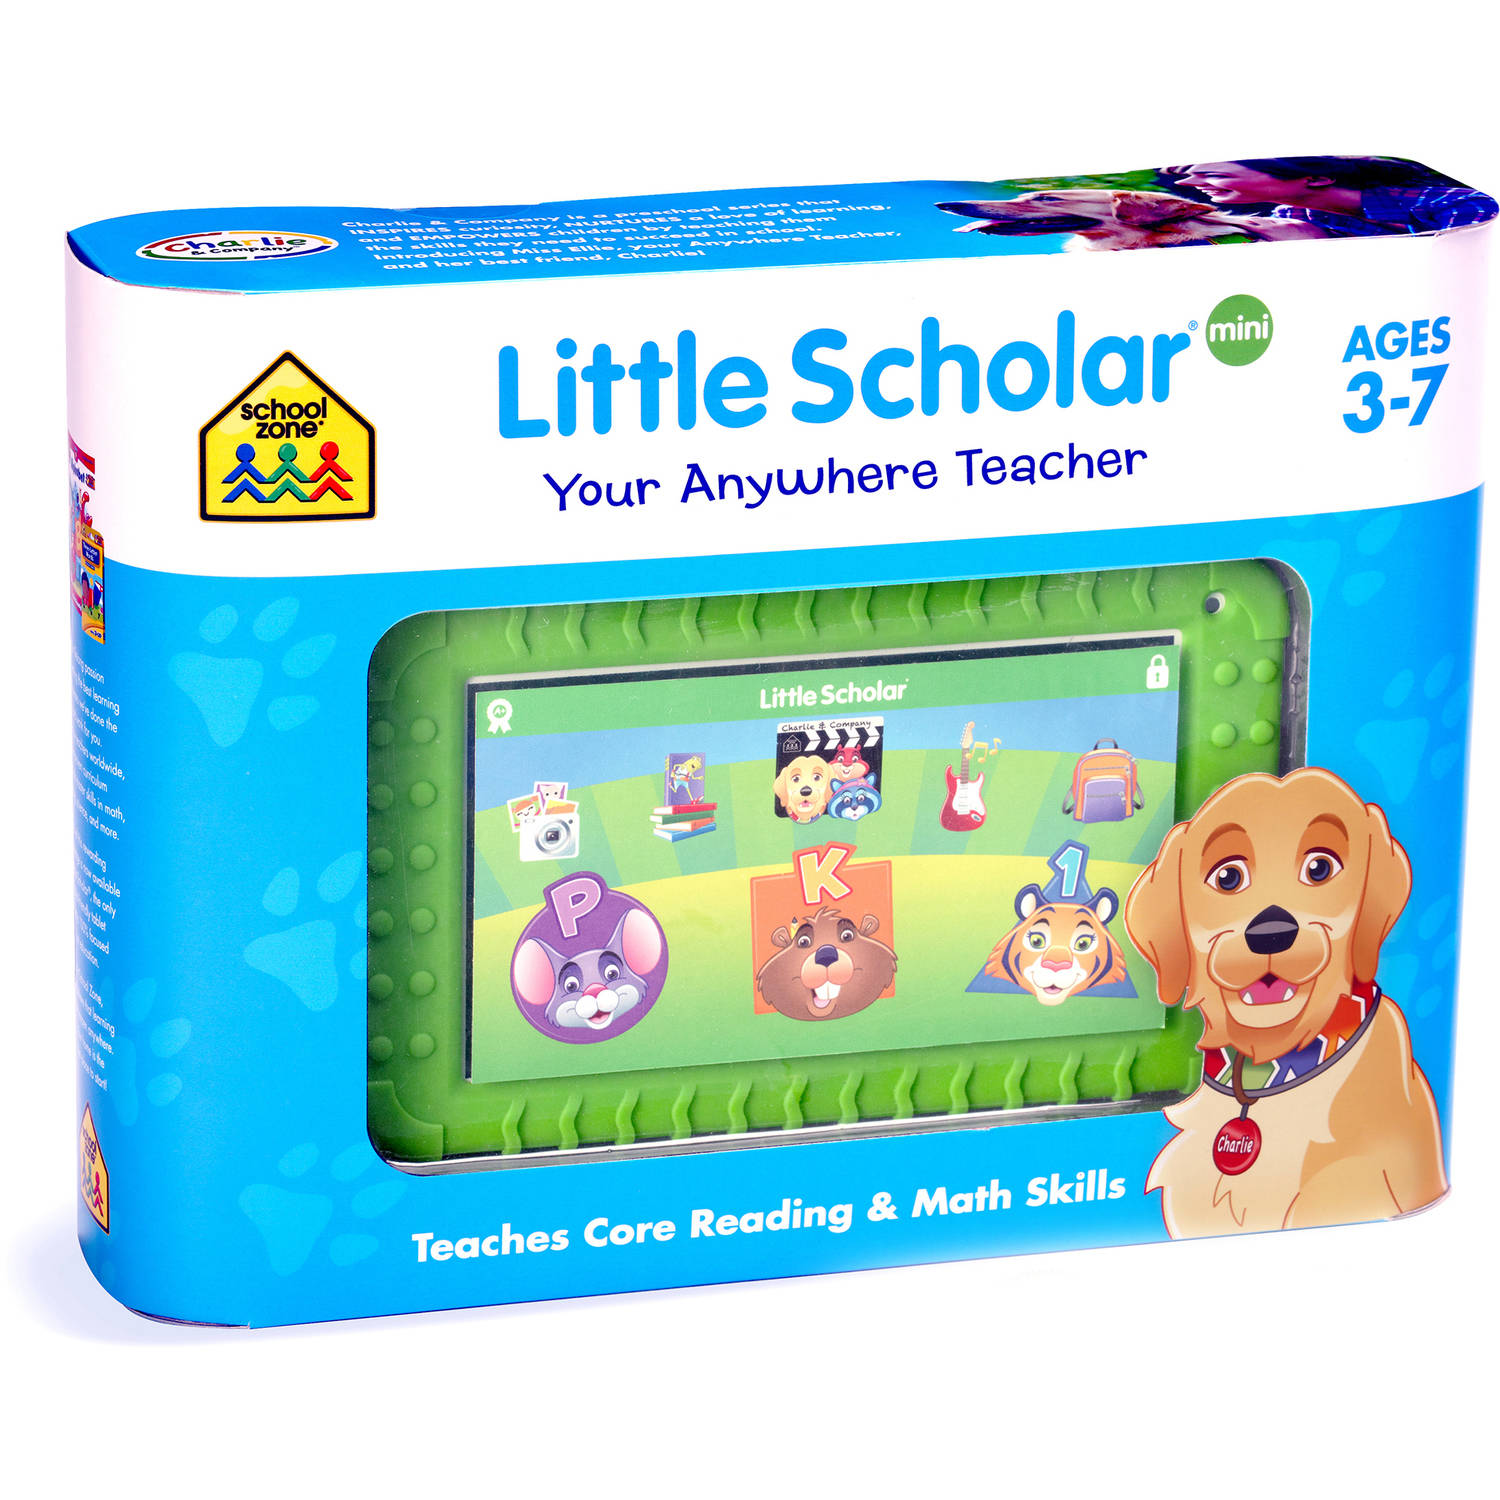 """Little Scholar with WiFi 7"""" Kid's Learning Tablet PC by School Zone Featuring Android 5.1.1 (Lollipop) Operating System and Premium Green Bumper"""